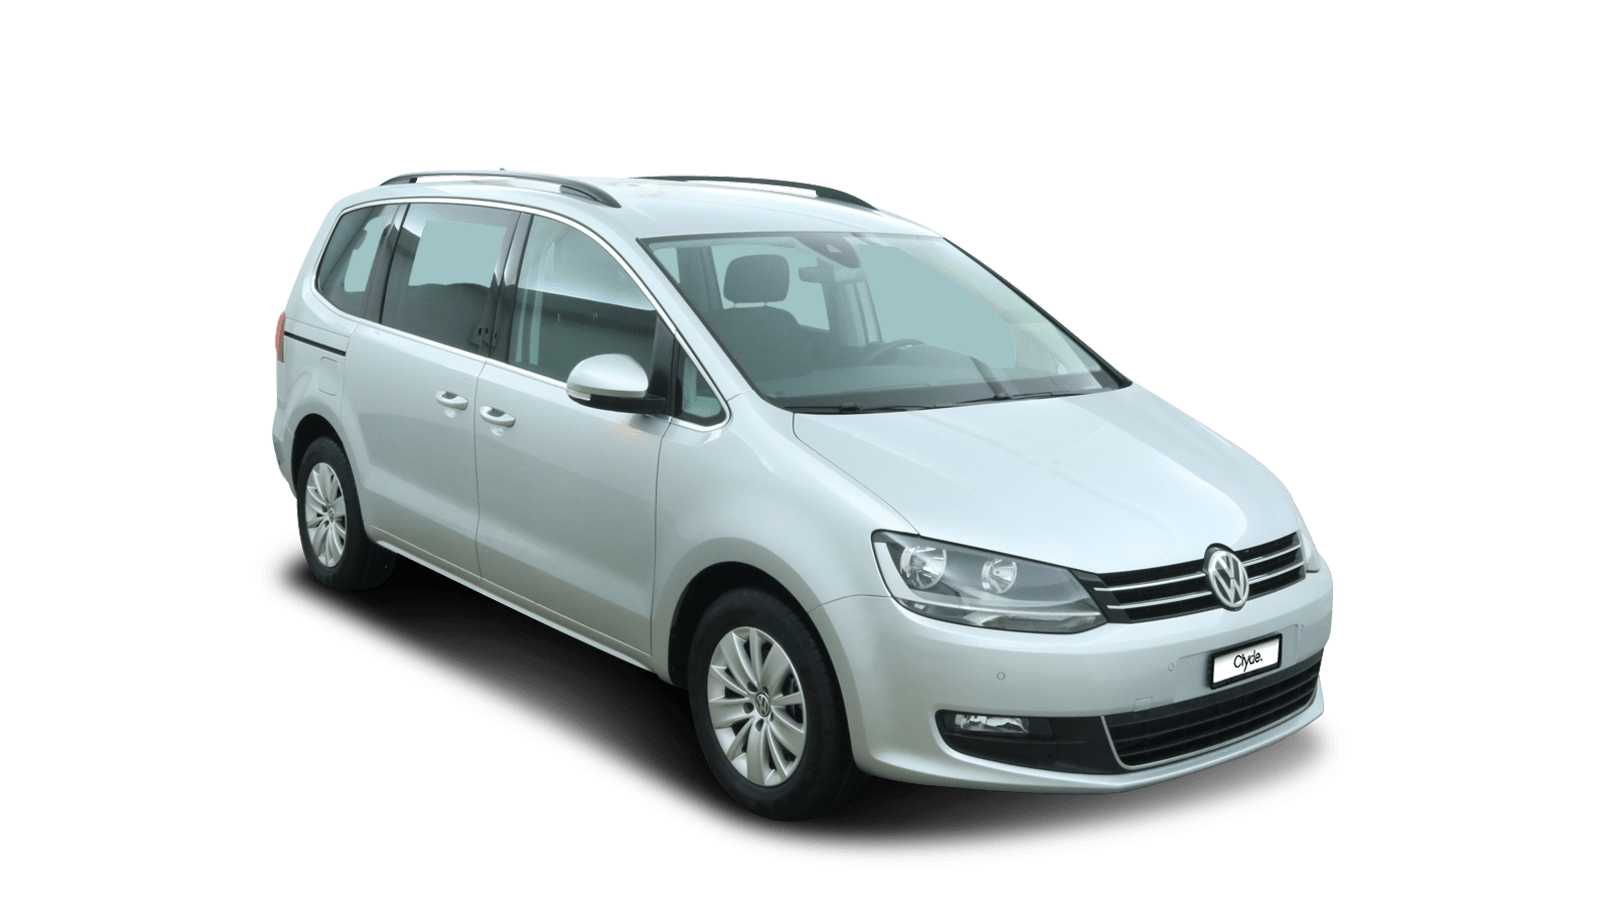 VW Sharan Silver front - Clyde car subscription